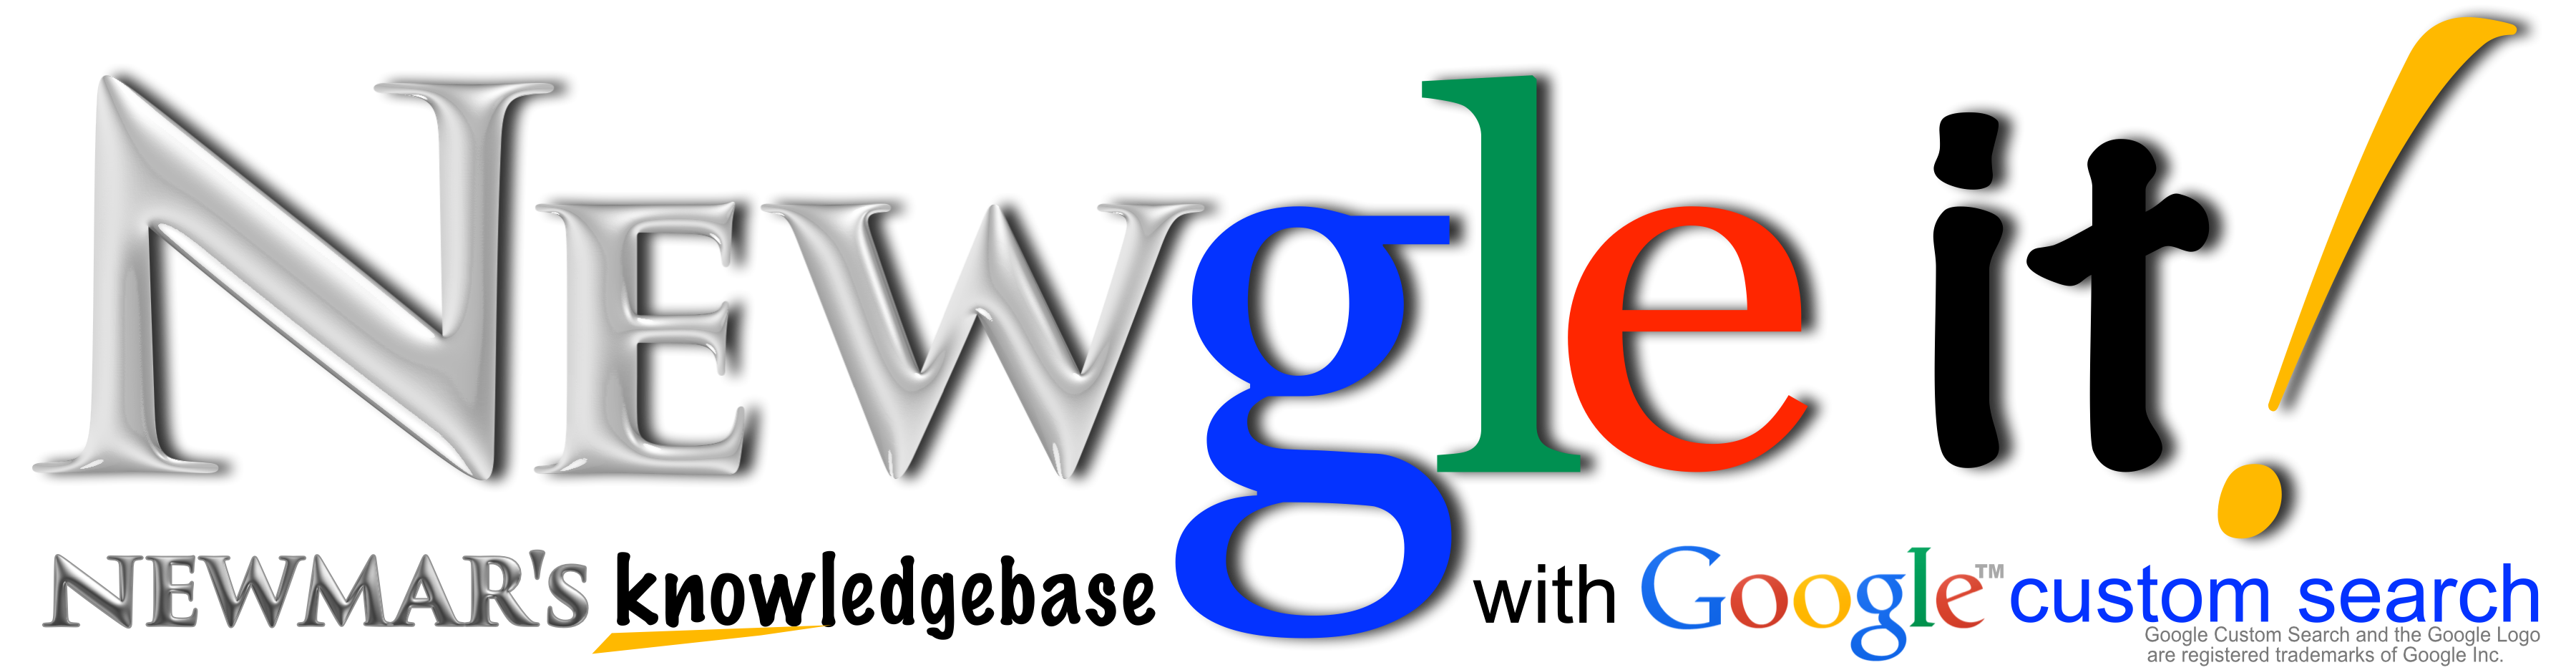 Newgle_it_-_Google_TM_-_3600_x_936